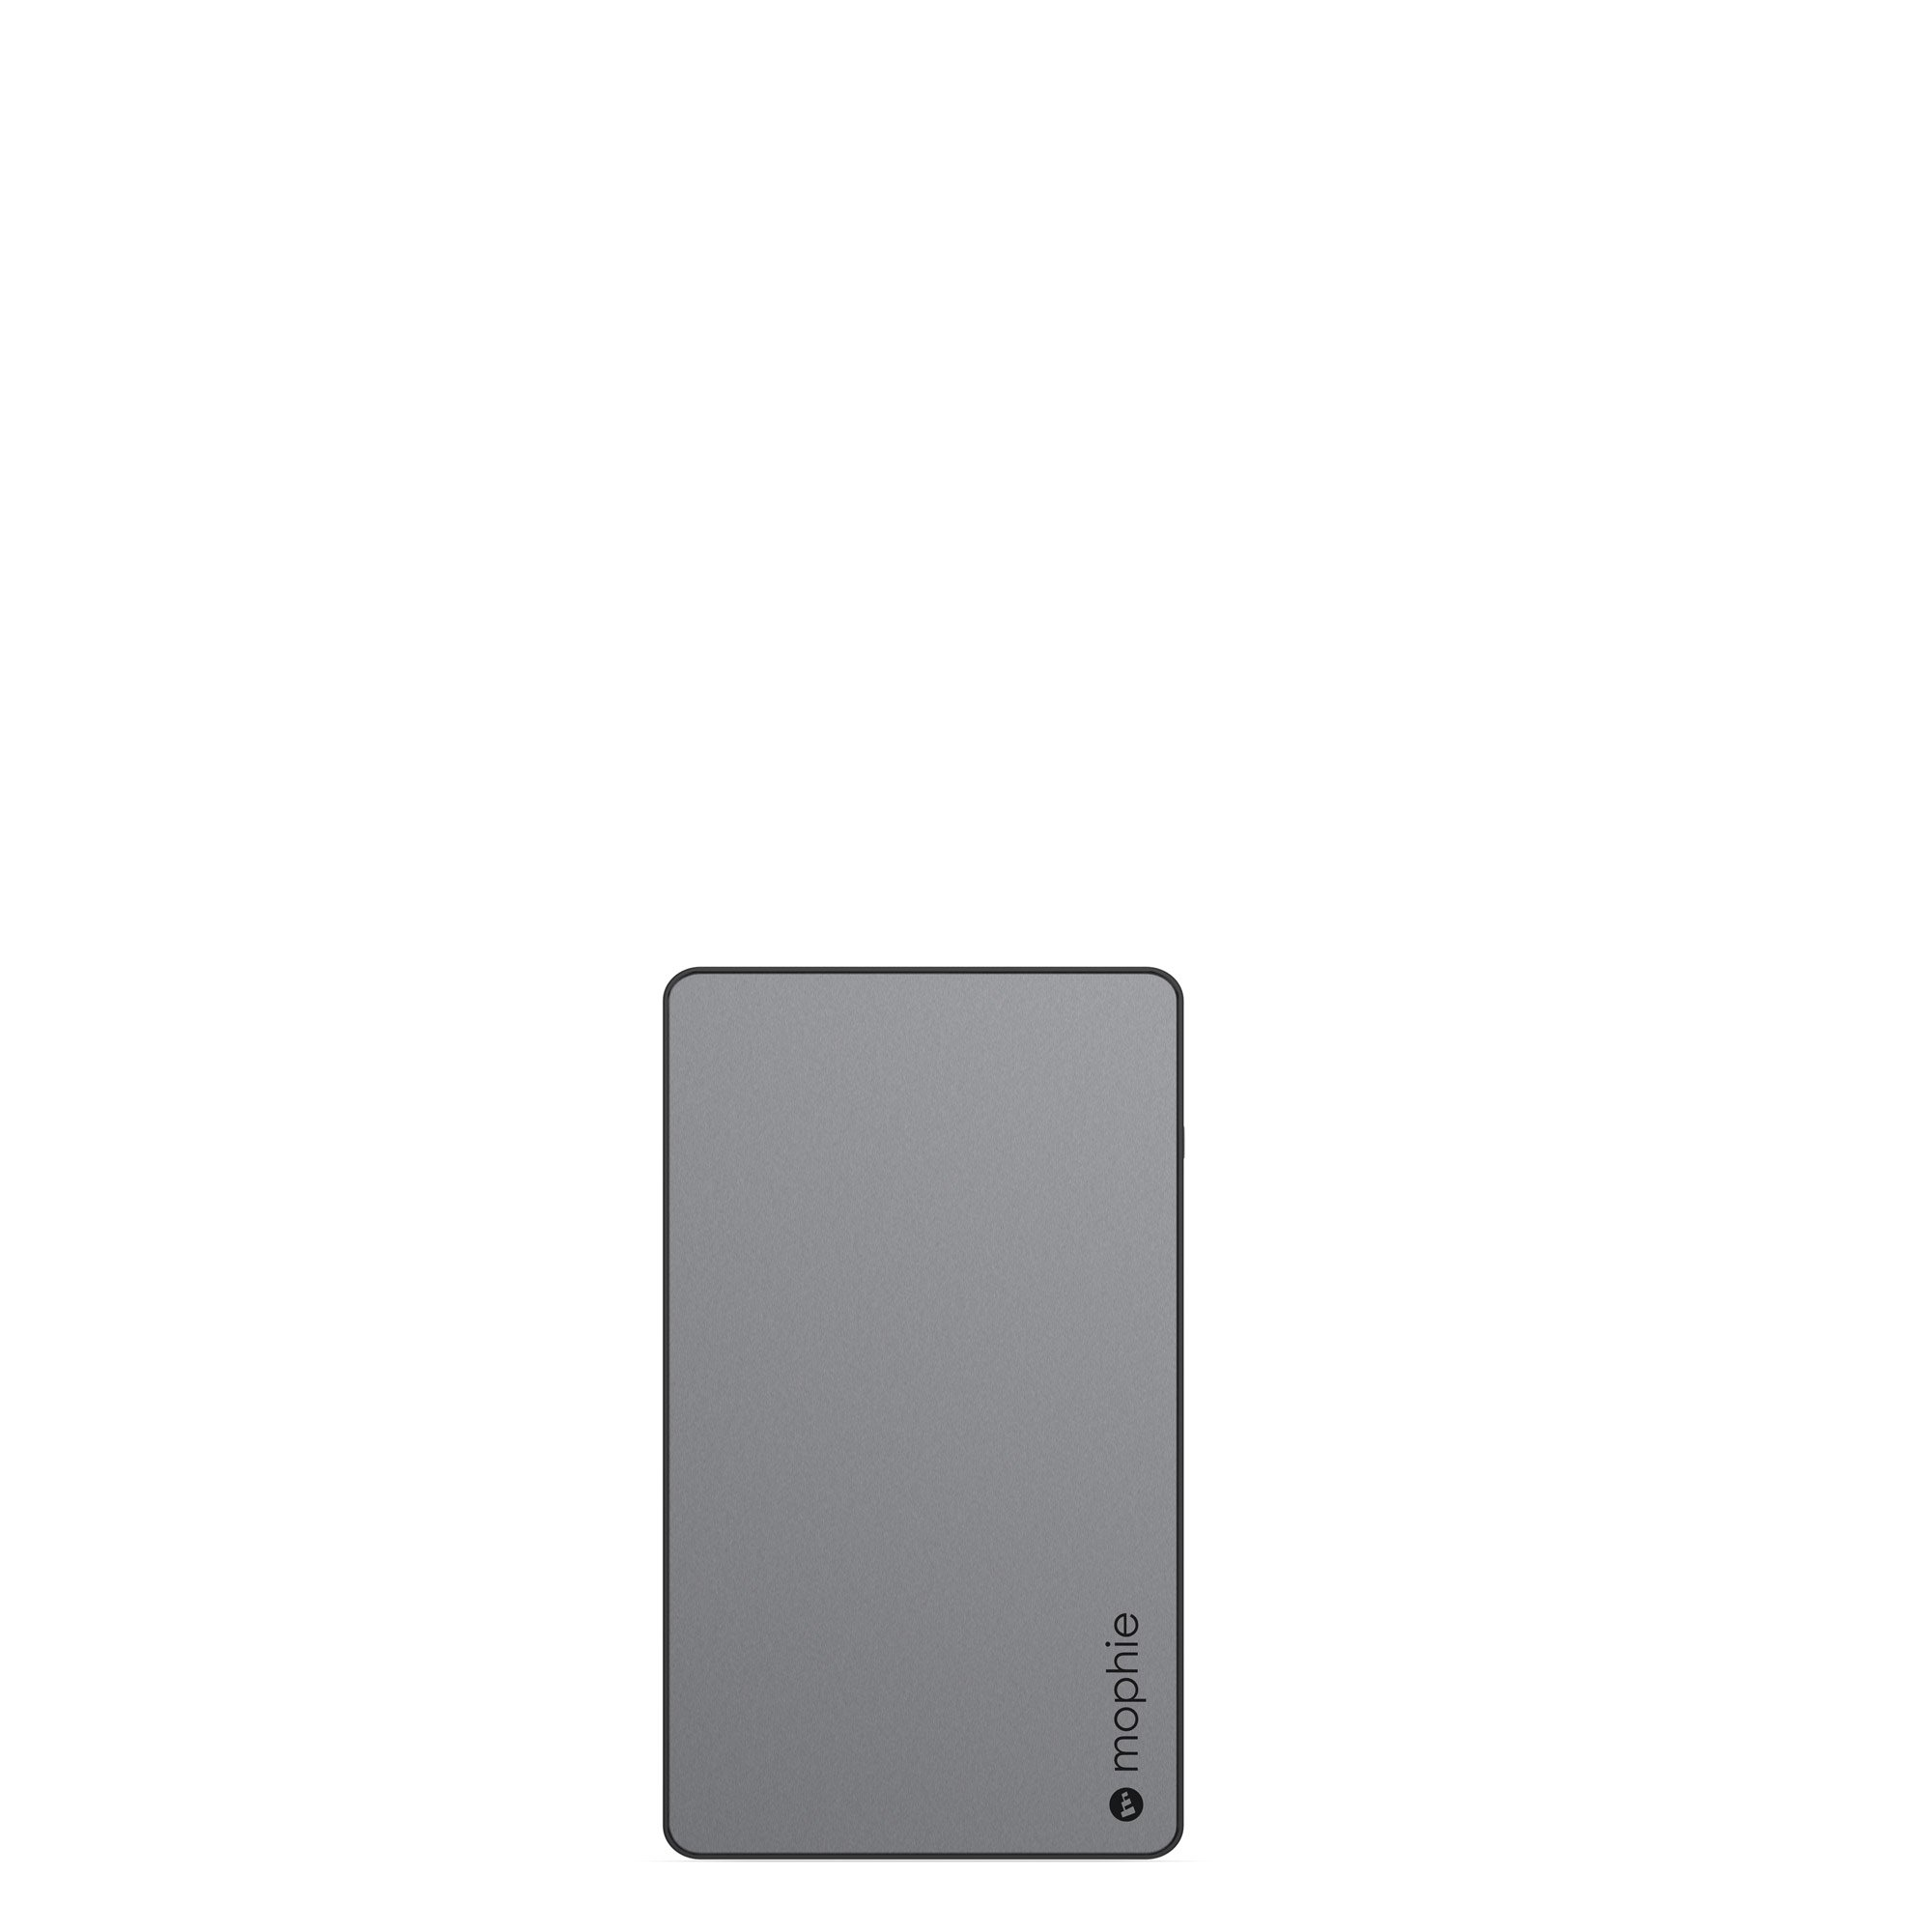 mophie powerstation External Battery for Universal Smartphones and Tablets (6,000mAh) - Space Grey